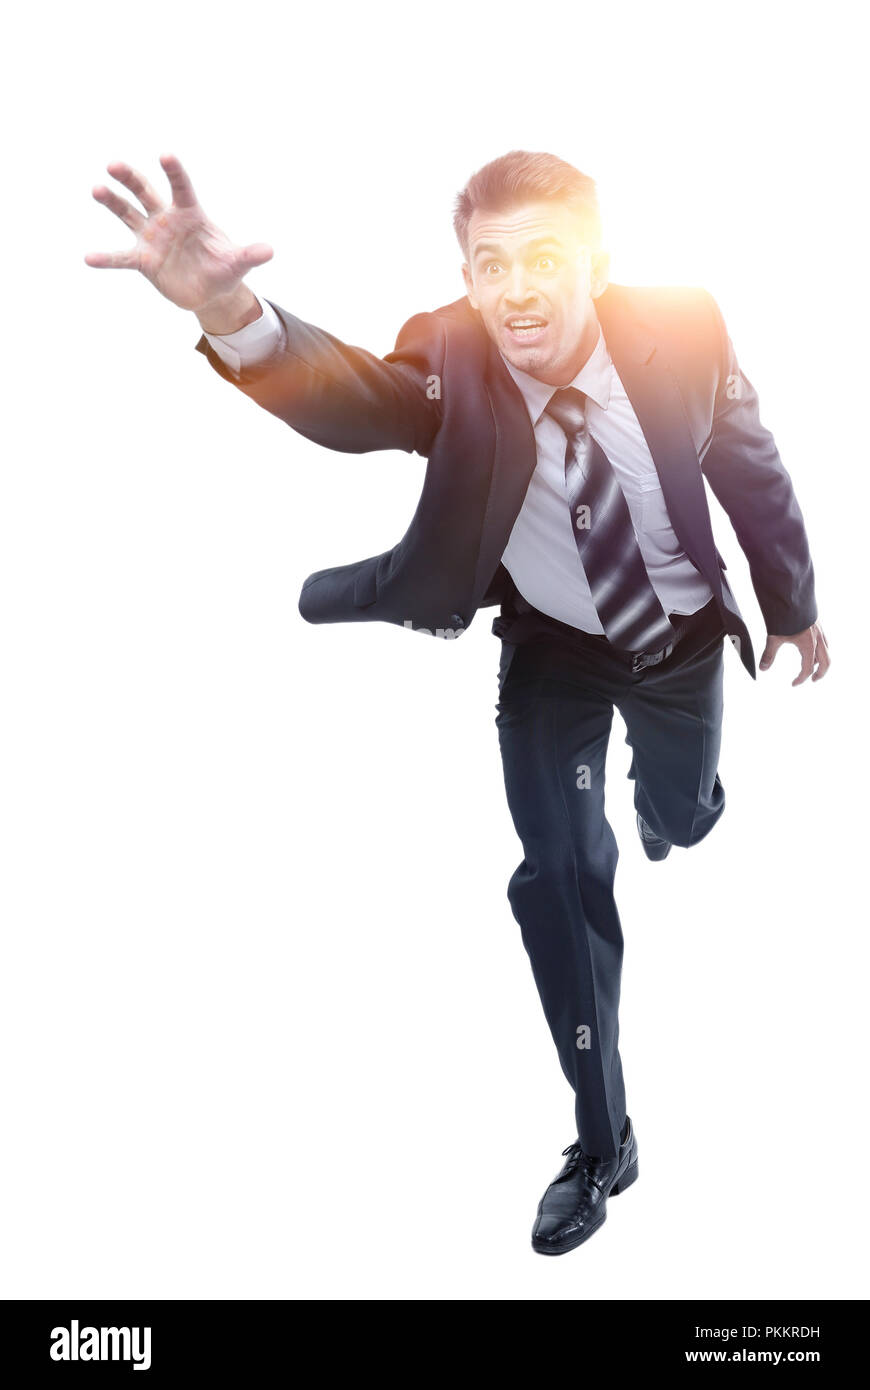 businessman runs forward stretching out his hand - Stock Image